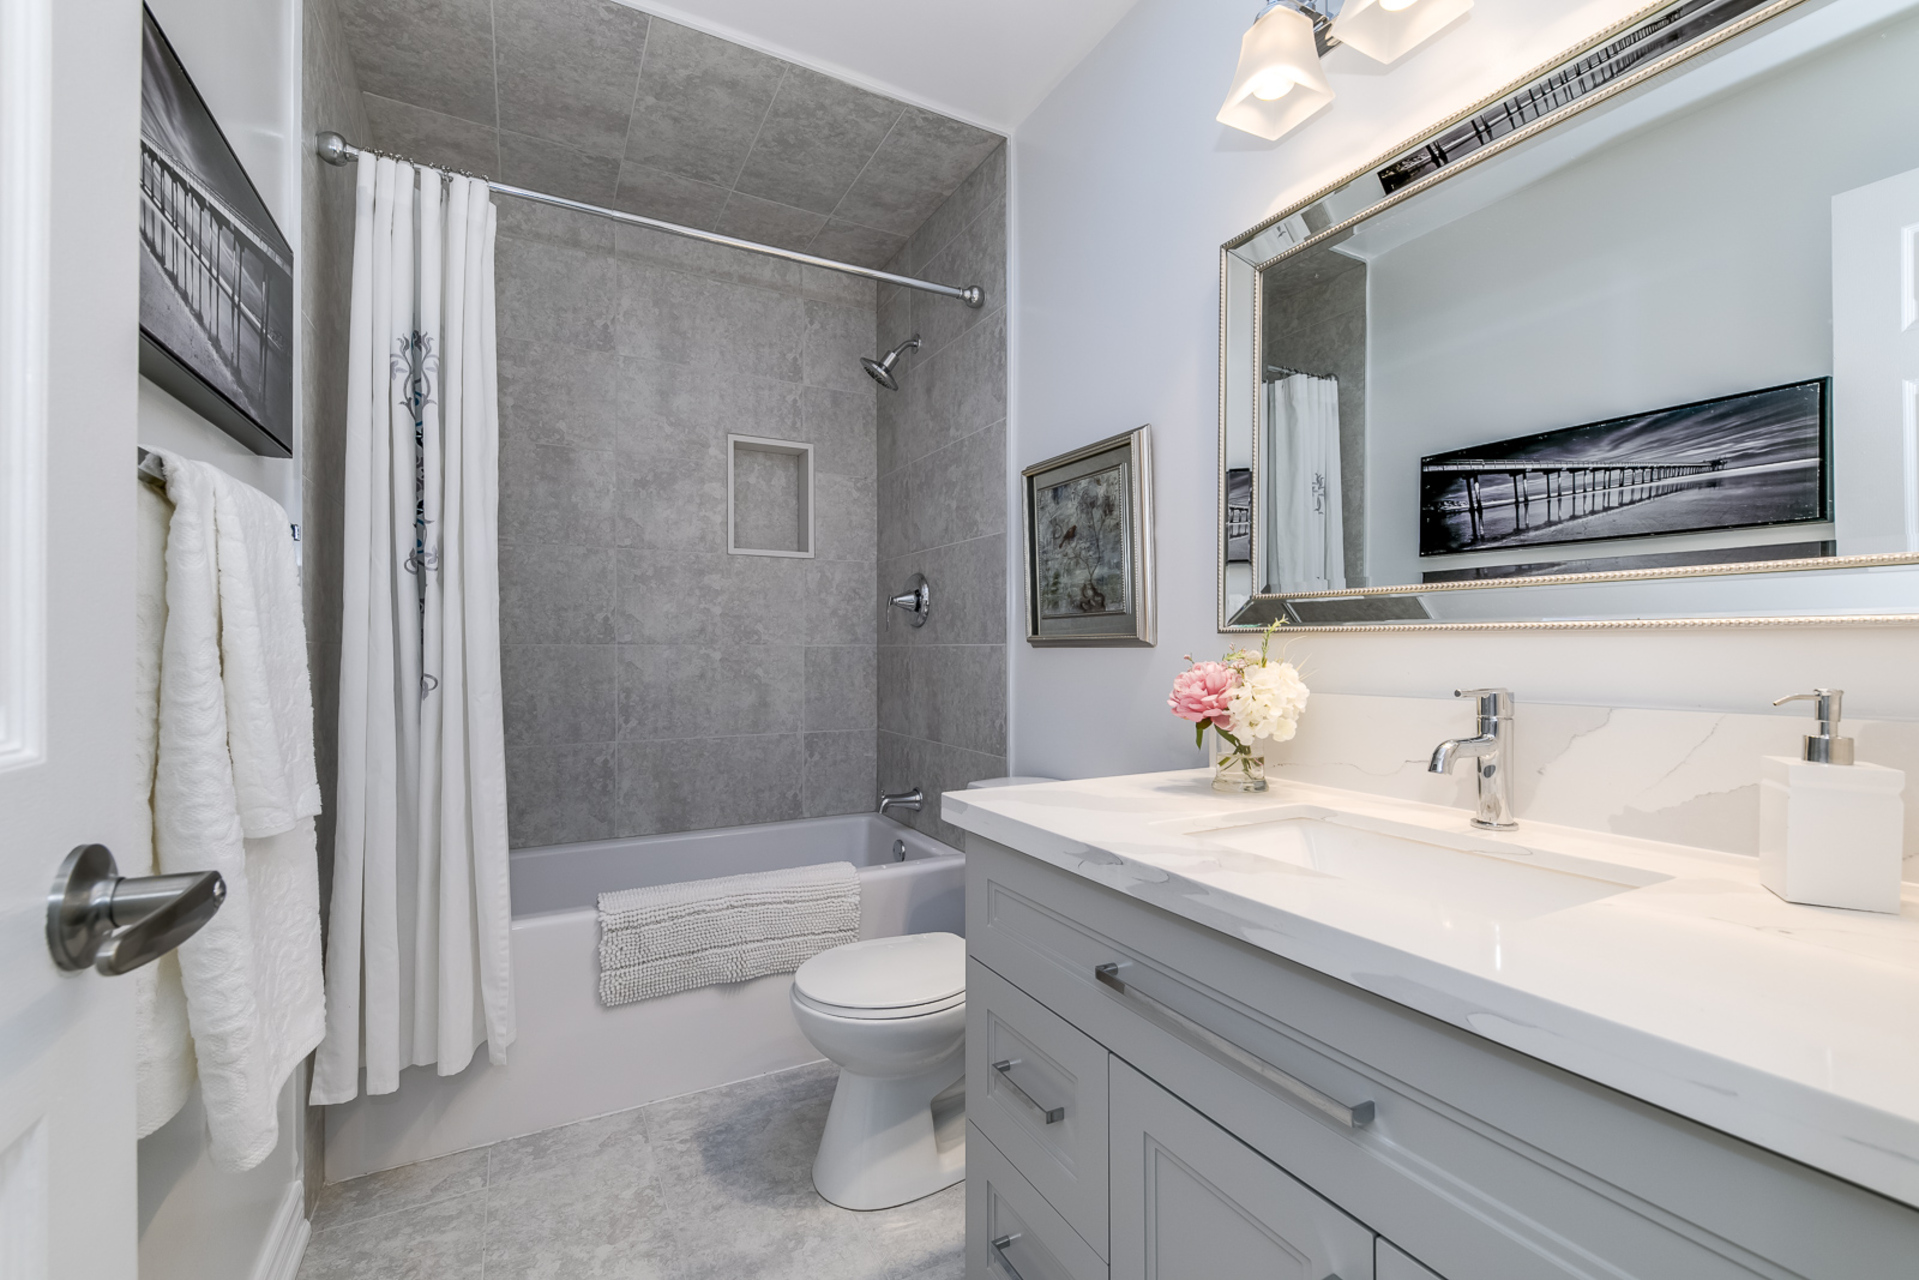 mls-43 at 4246 Wakefield Crescent, Creditview, Mississauga